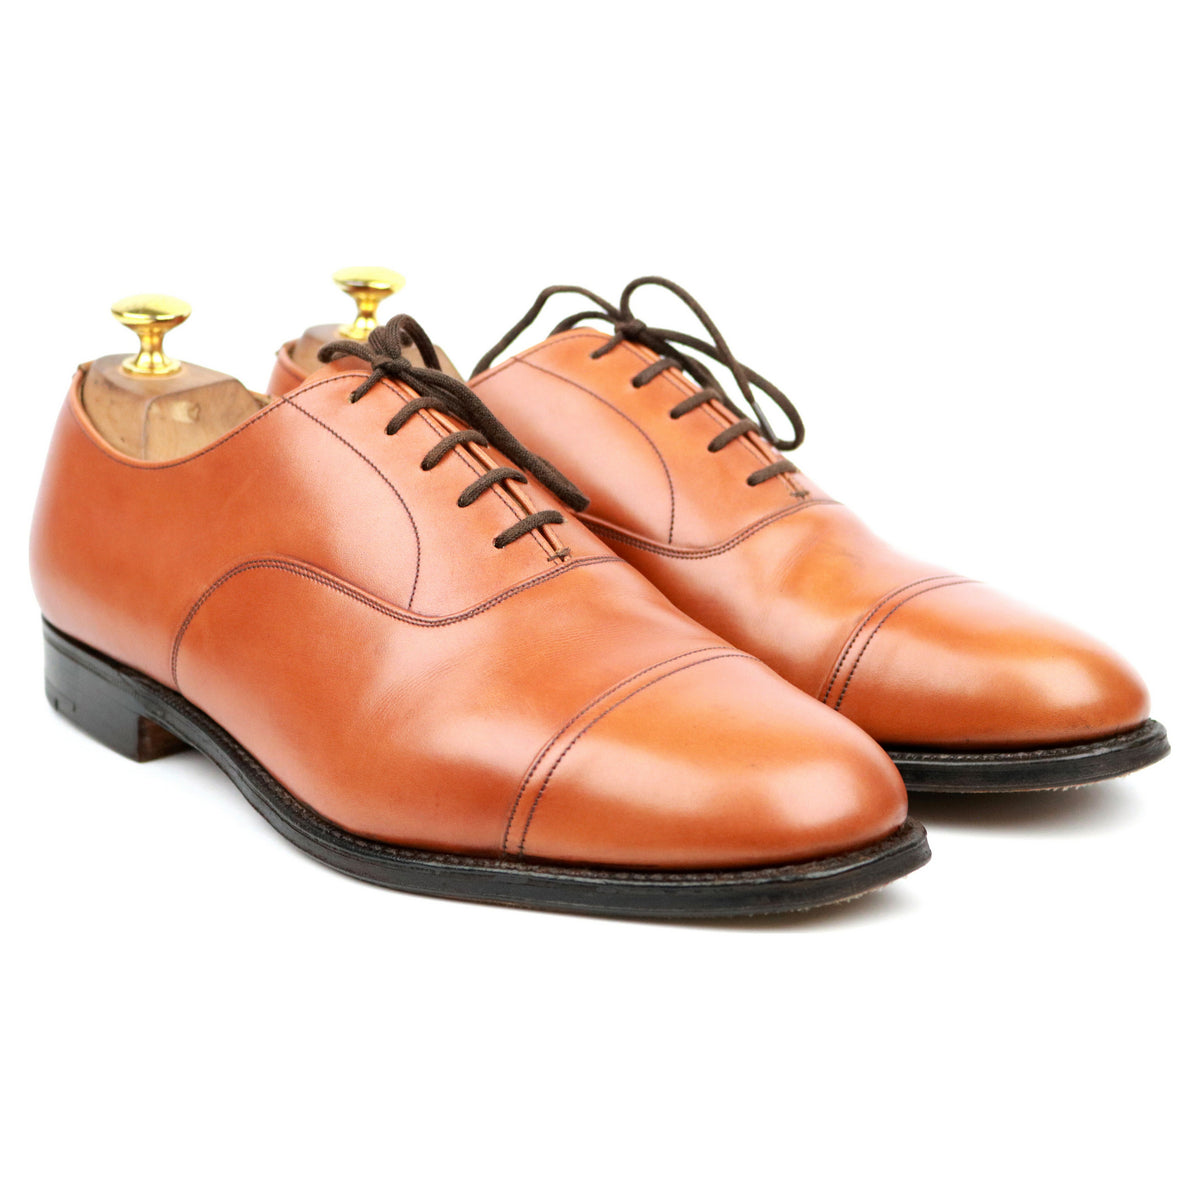 Church's 'Messenger' Tan Brown Leather Oxford UK 10 F